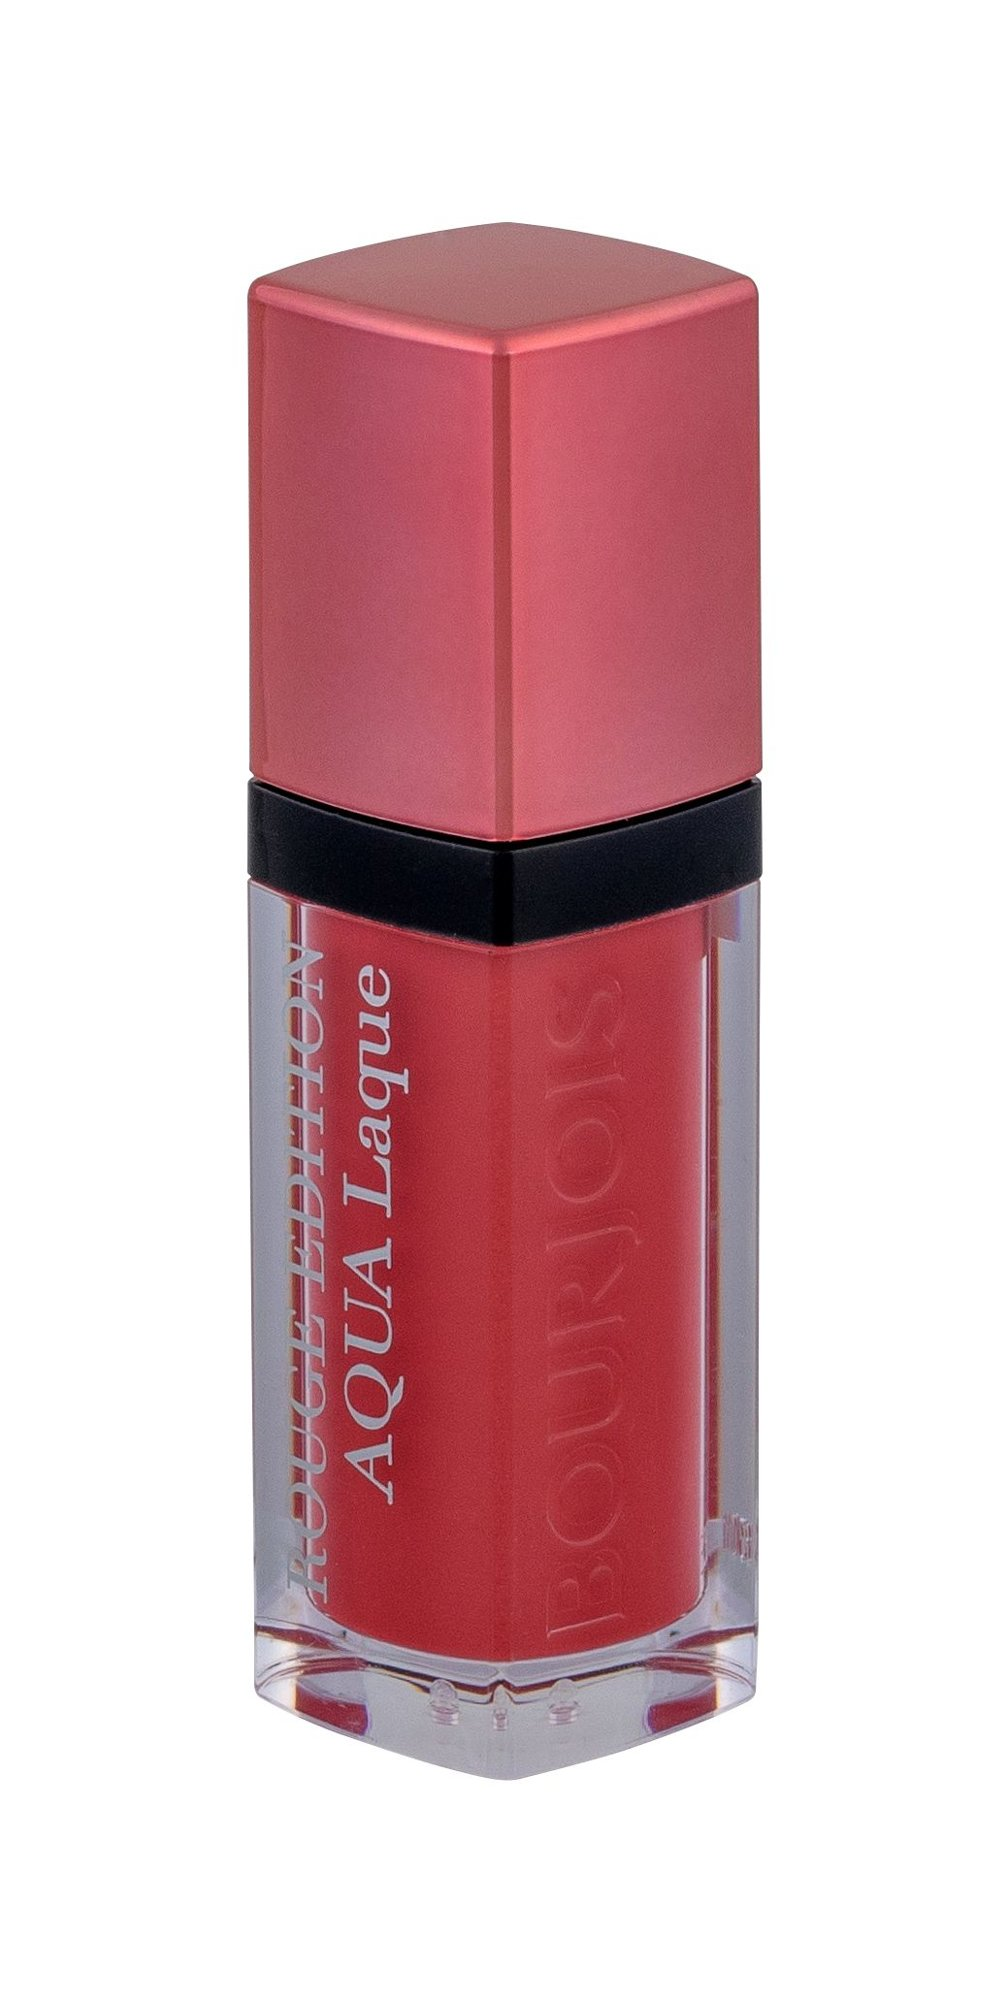 BOURJOIS Paris Rouge Edition Cosmetic 7,7ml 01 Appechissant